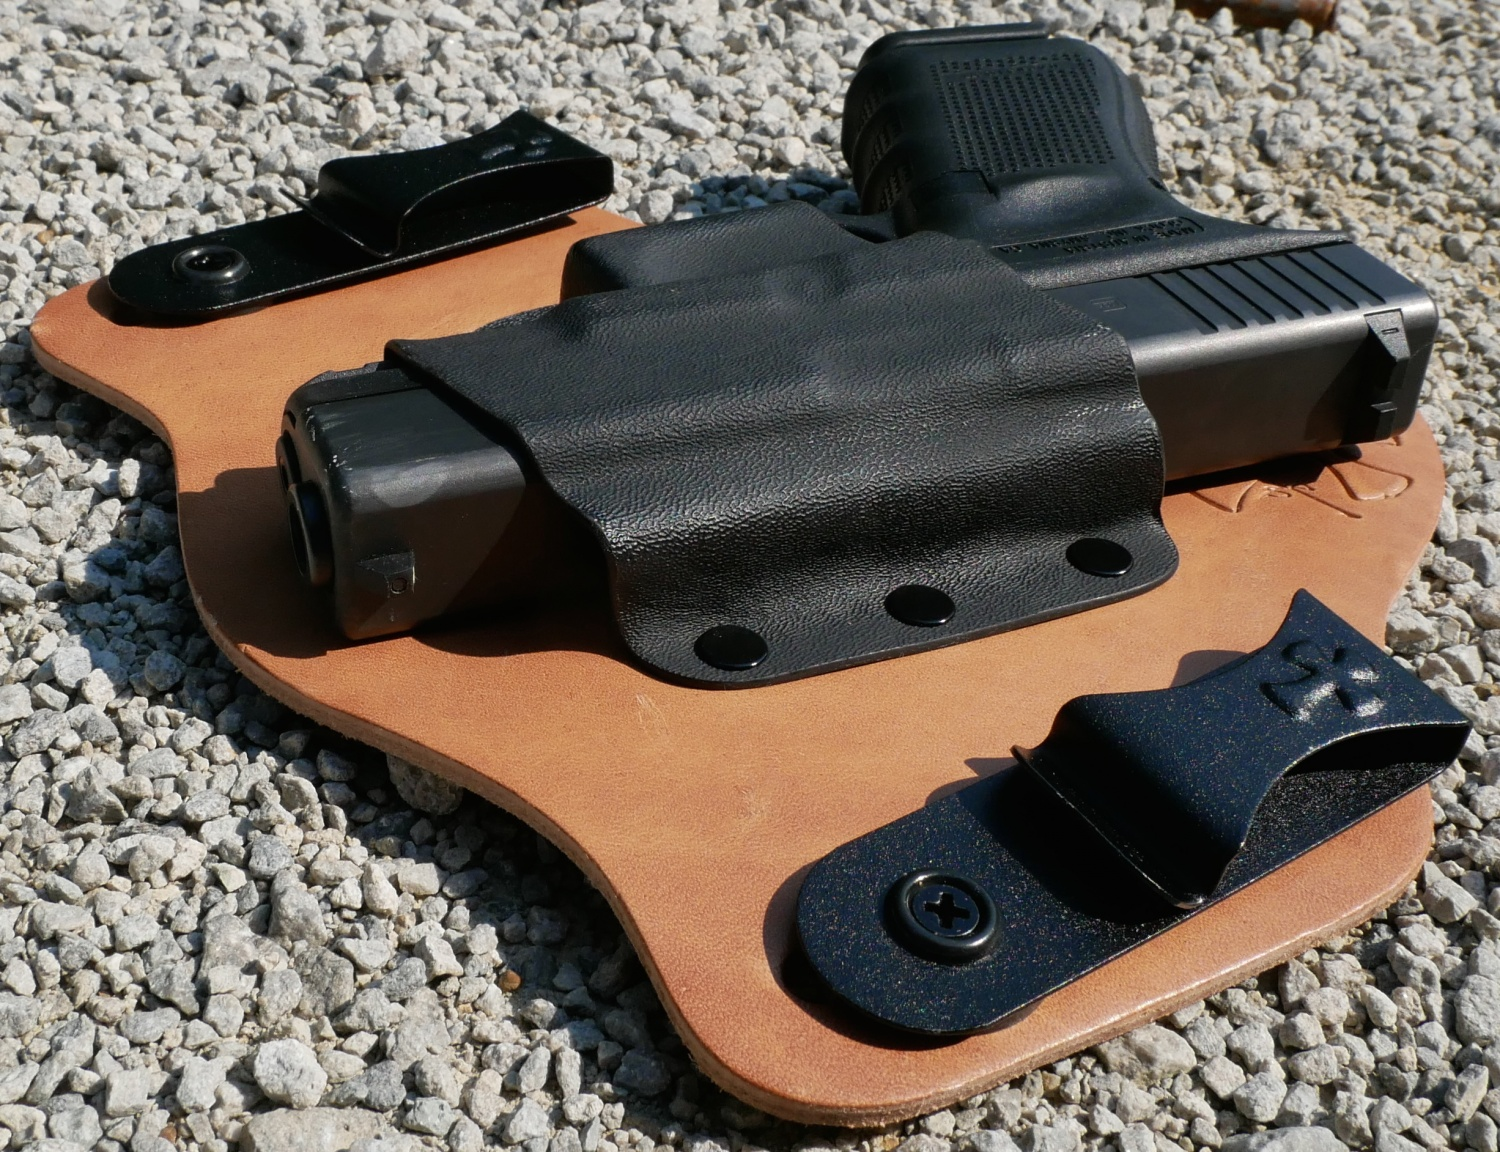 TFB Review: CrossBreed Founder's Series Supertuck IWB